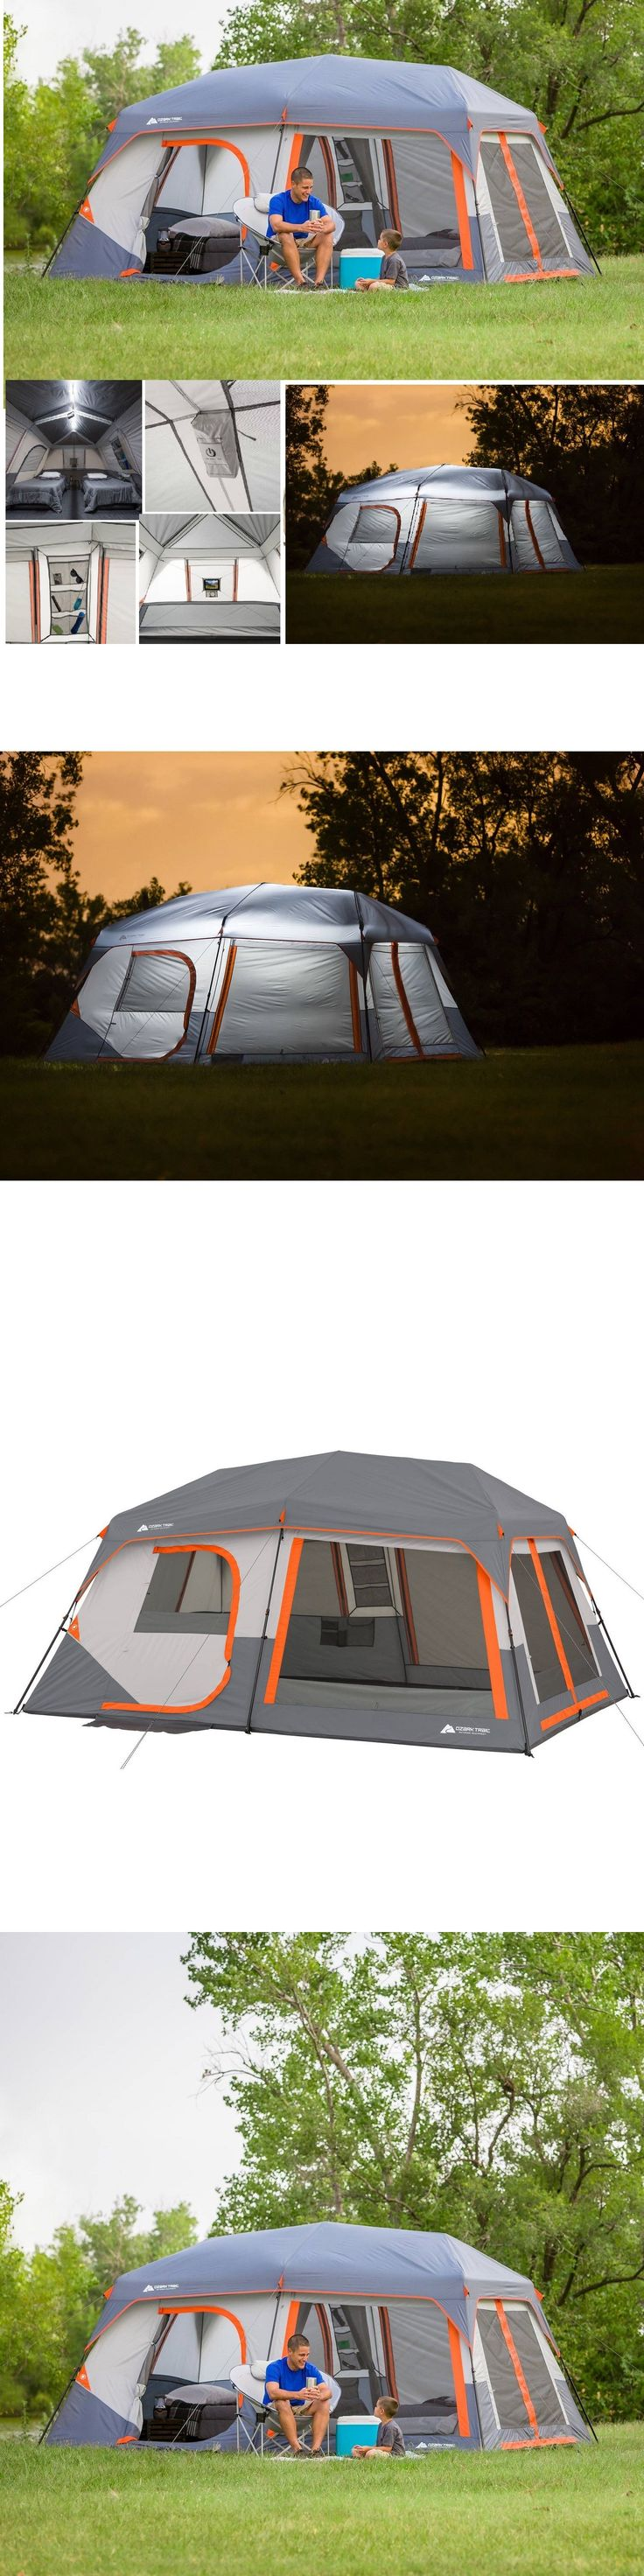 Tents 179010: Ozark Trail 10 Person 2 Room Instant Cabin Family Camping Tent W Led Light Pole -> BUY IT NOW ONLY: $228.97 on eBay!